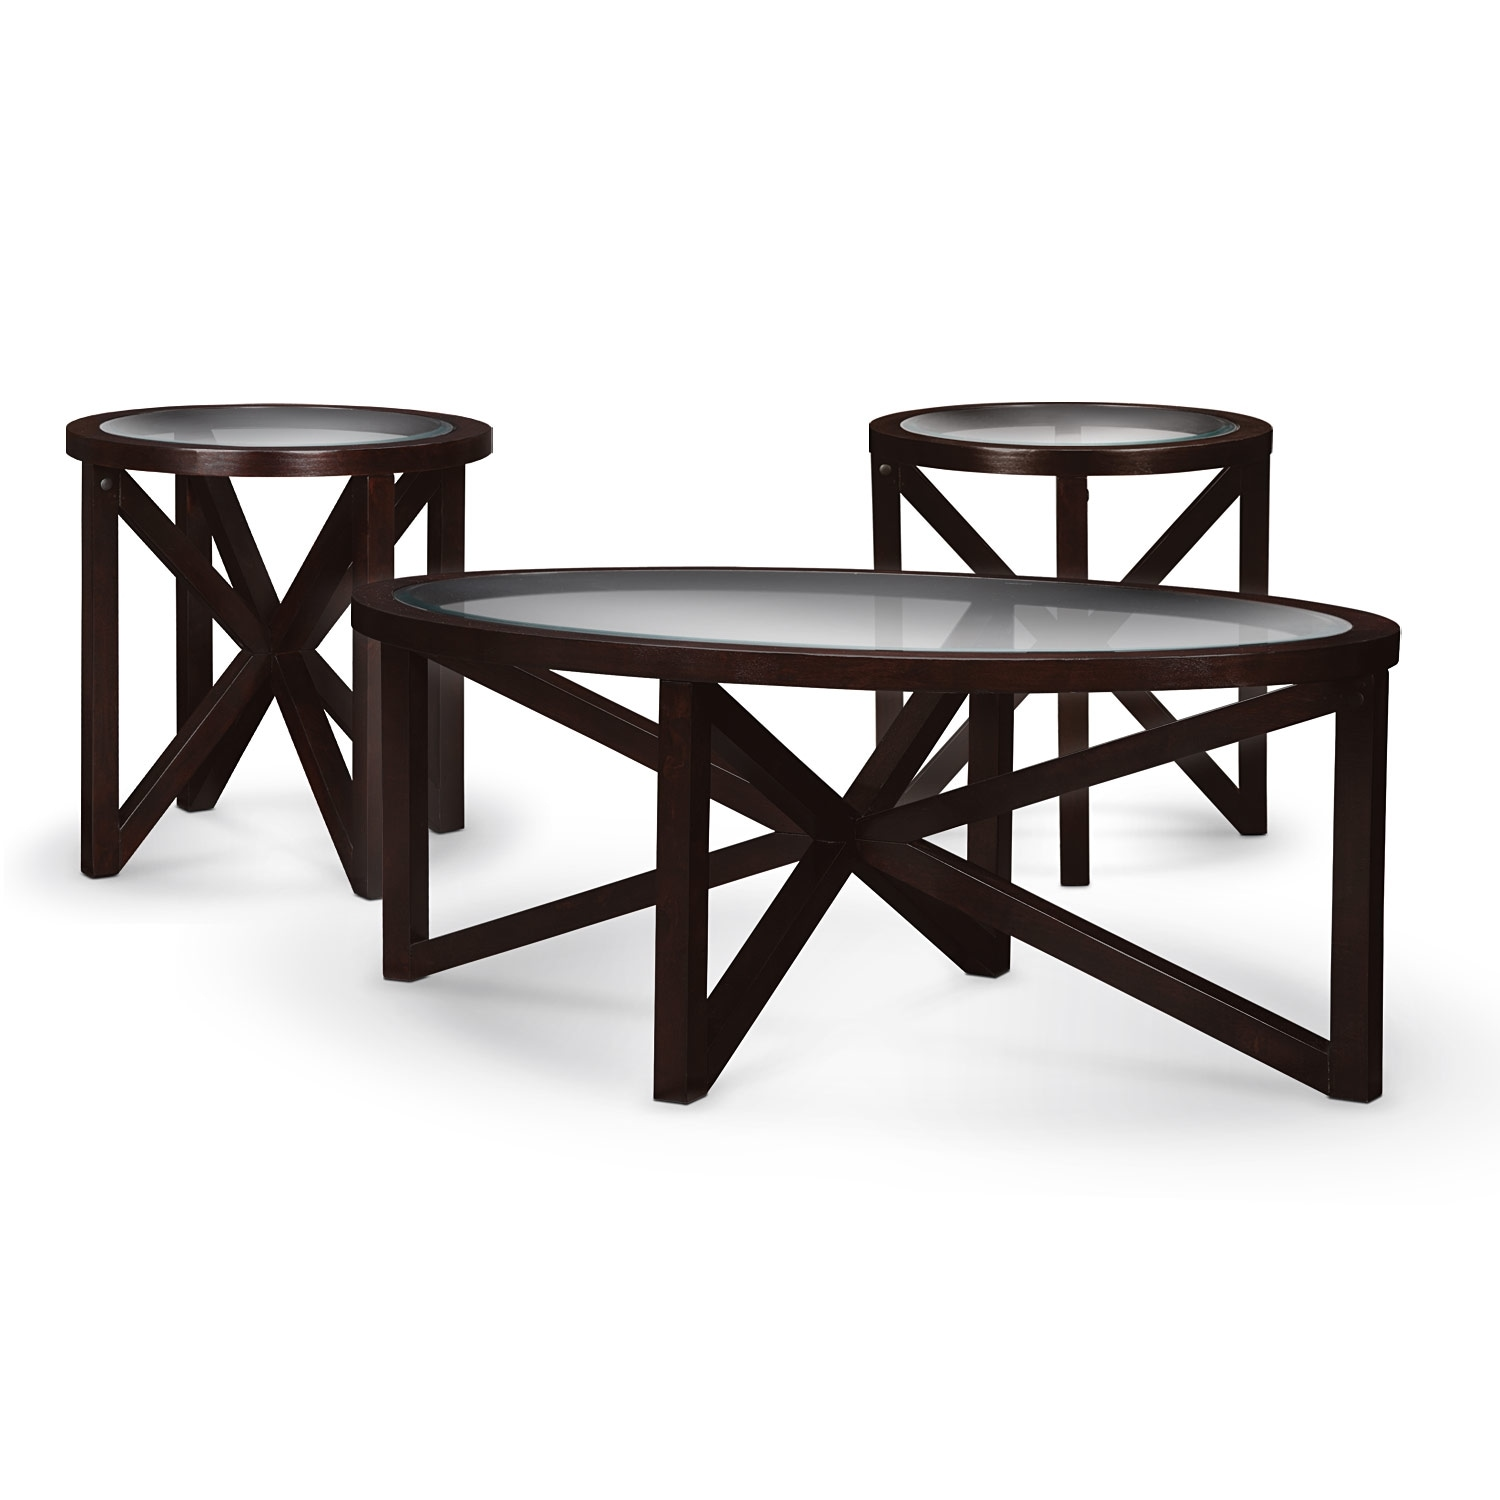 Starburst Cocktail Table and 2 End Tables - Merlot